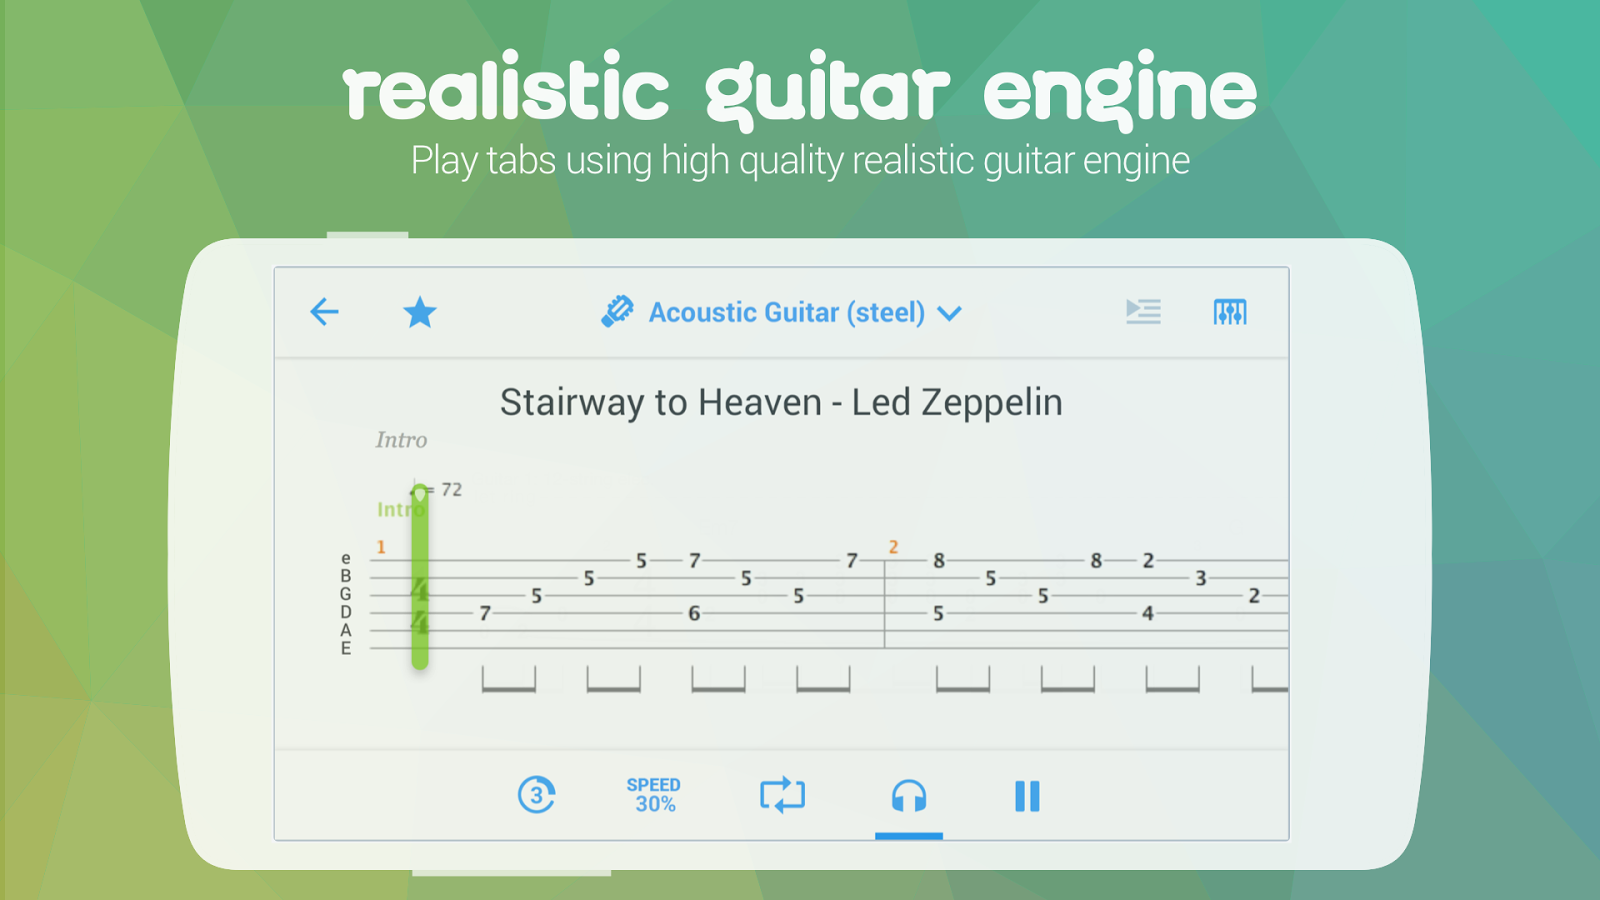 Songsterr guitar tabs chords 2023 apk download android music songsterr guitar tabs chords 2023 screenshot 4 hexwebz Images